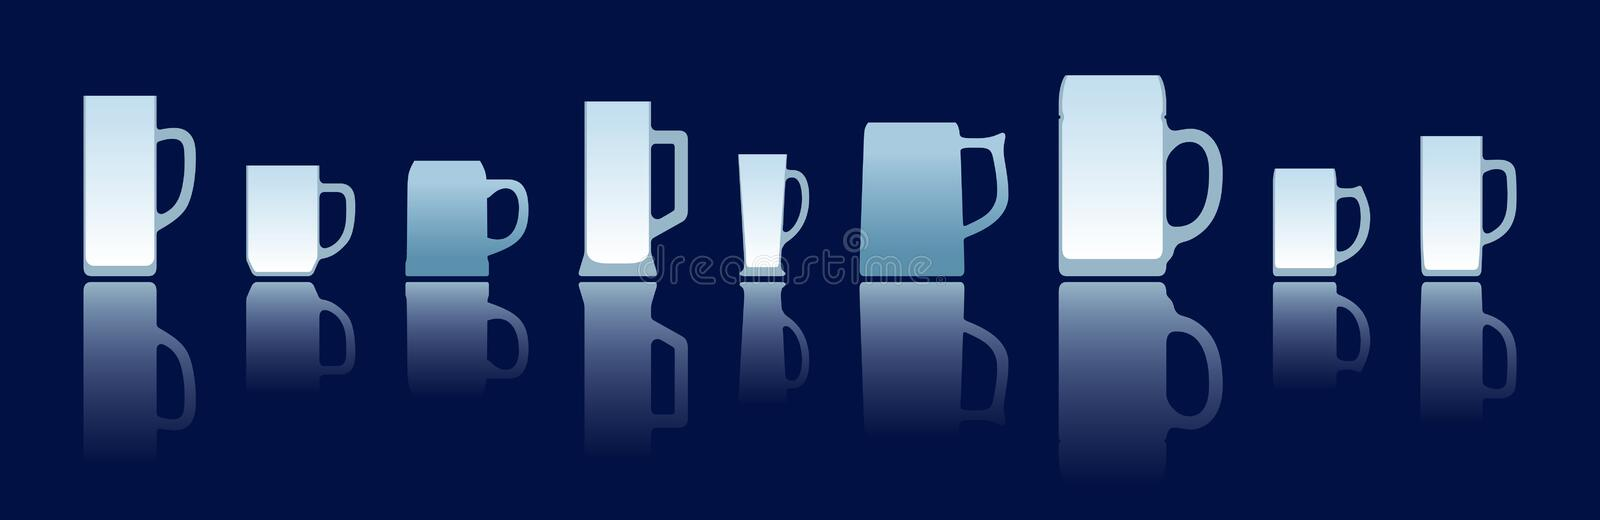 Beer mugs silhouettes royalty free illustration